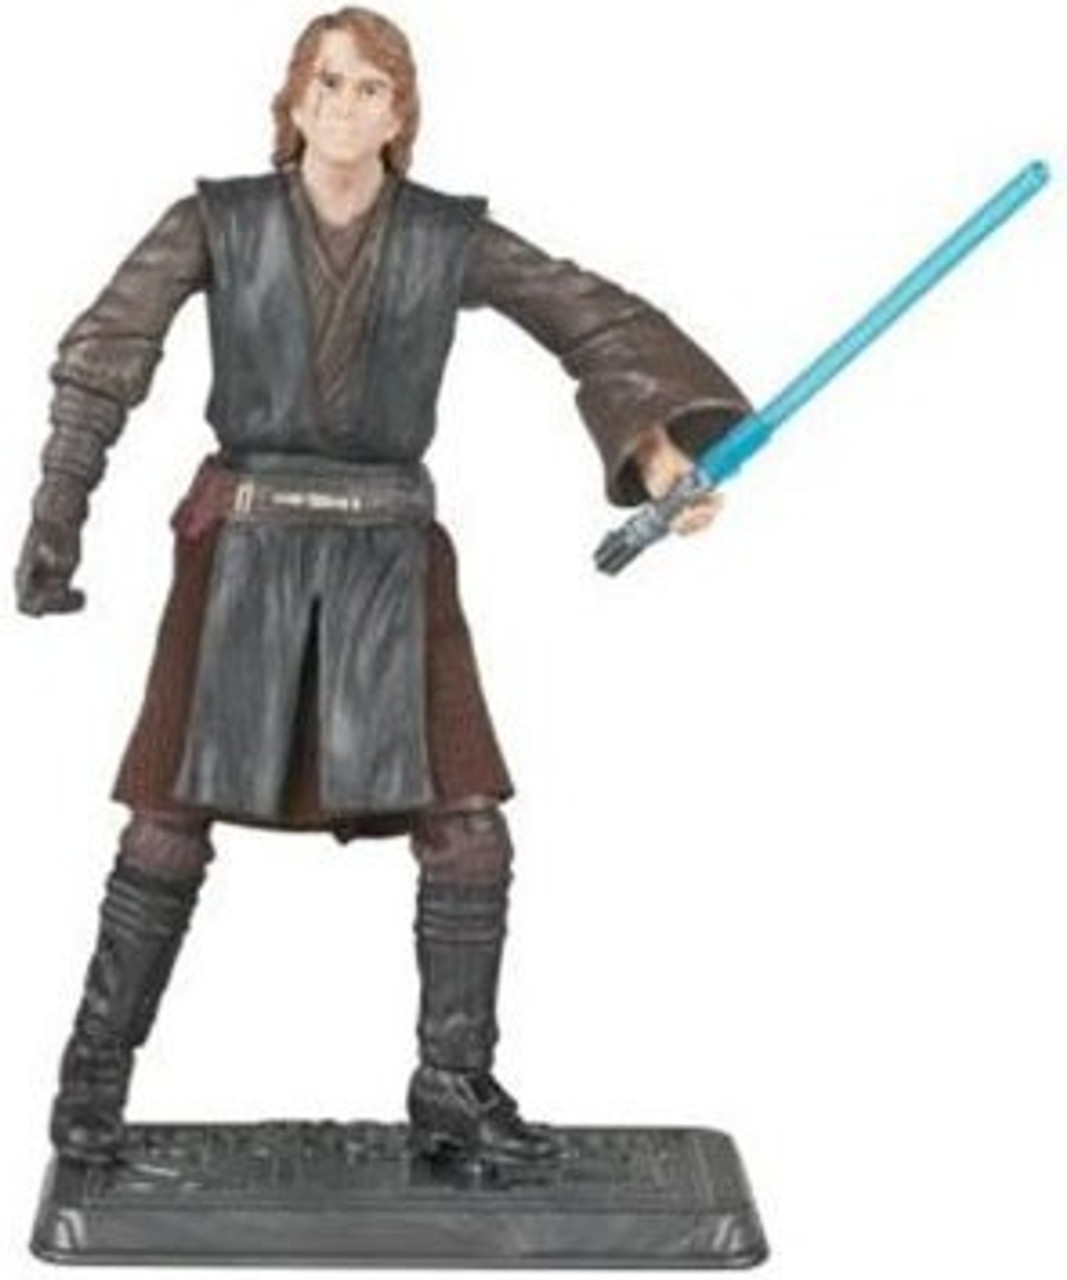 Star Wars Revenge of the Sith 30th Anniversary 2008 Wave 1 Anakin Skywalker Action Figure #2 [On Lava Platform]